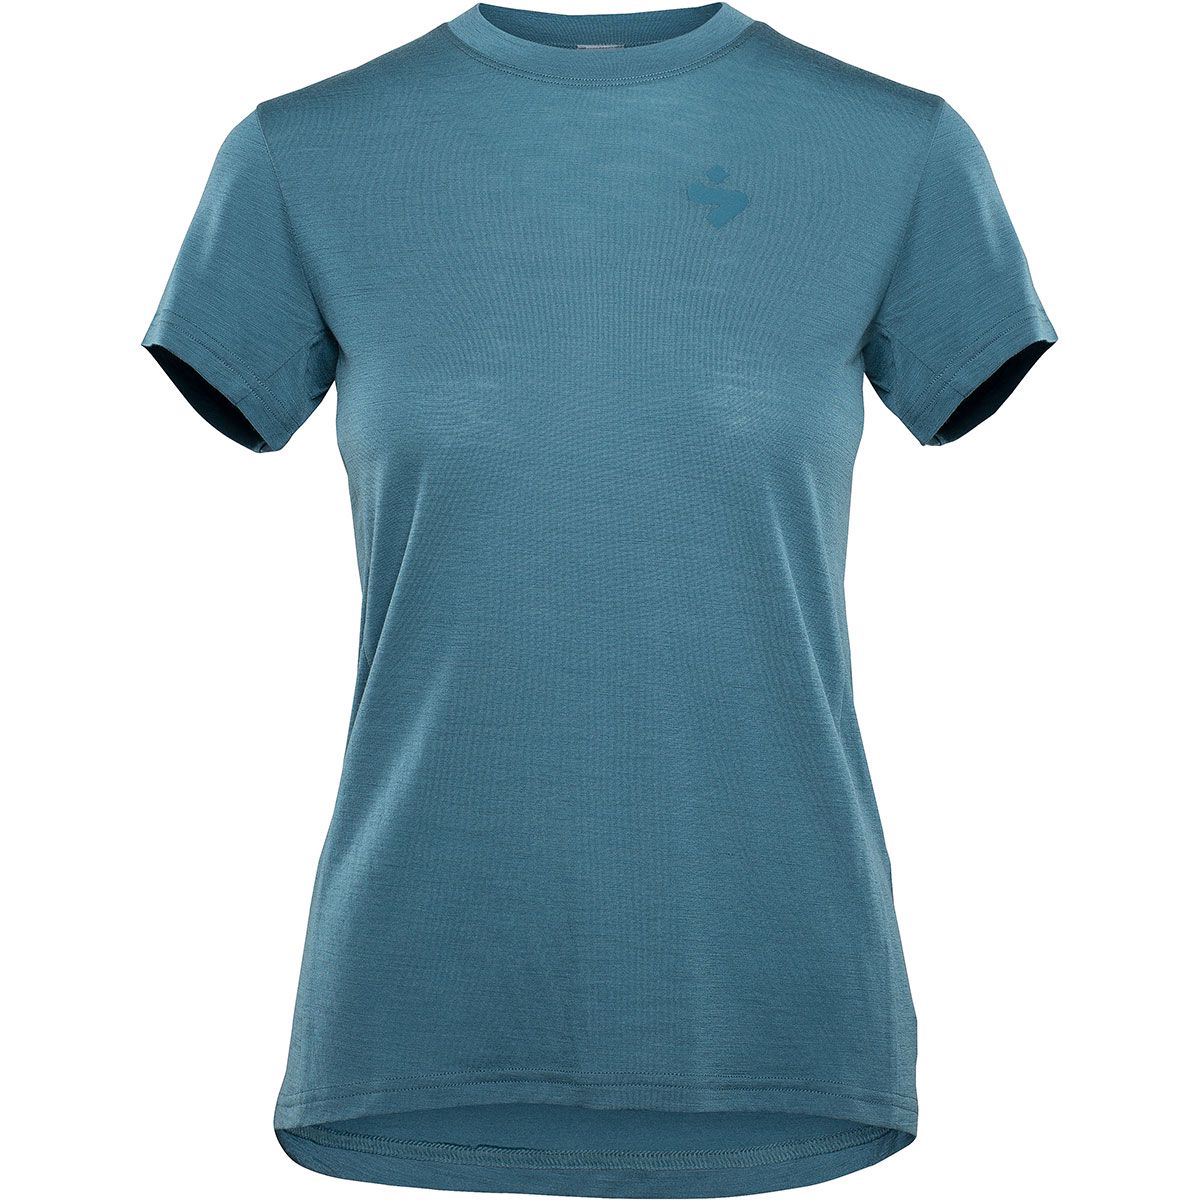 Sweet Protection Damen Hunter Merino T-Shirt (Größe XS, Grün) | T-Shirts Merino > Damen